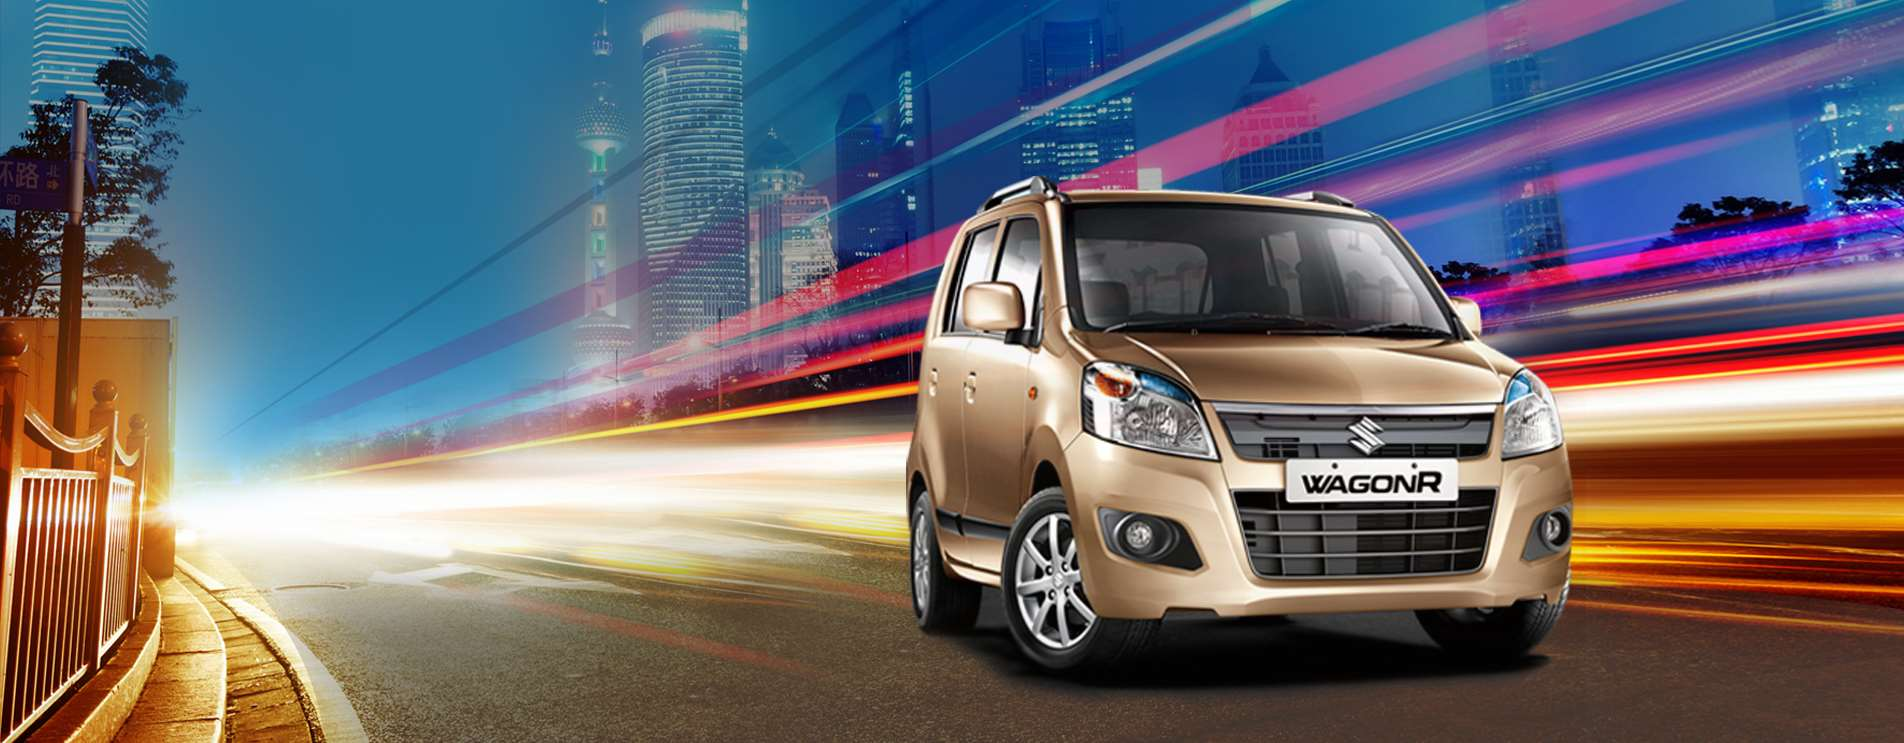 All new and Smartest WagonR by Maruti Suzuki. Available in Petrol, CNG and LPG. Best Mileage Car in India